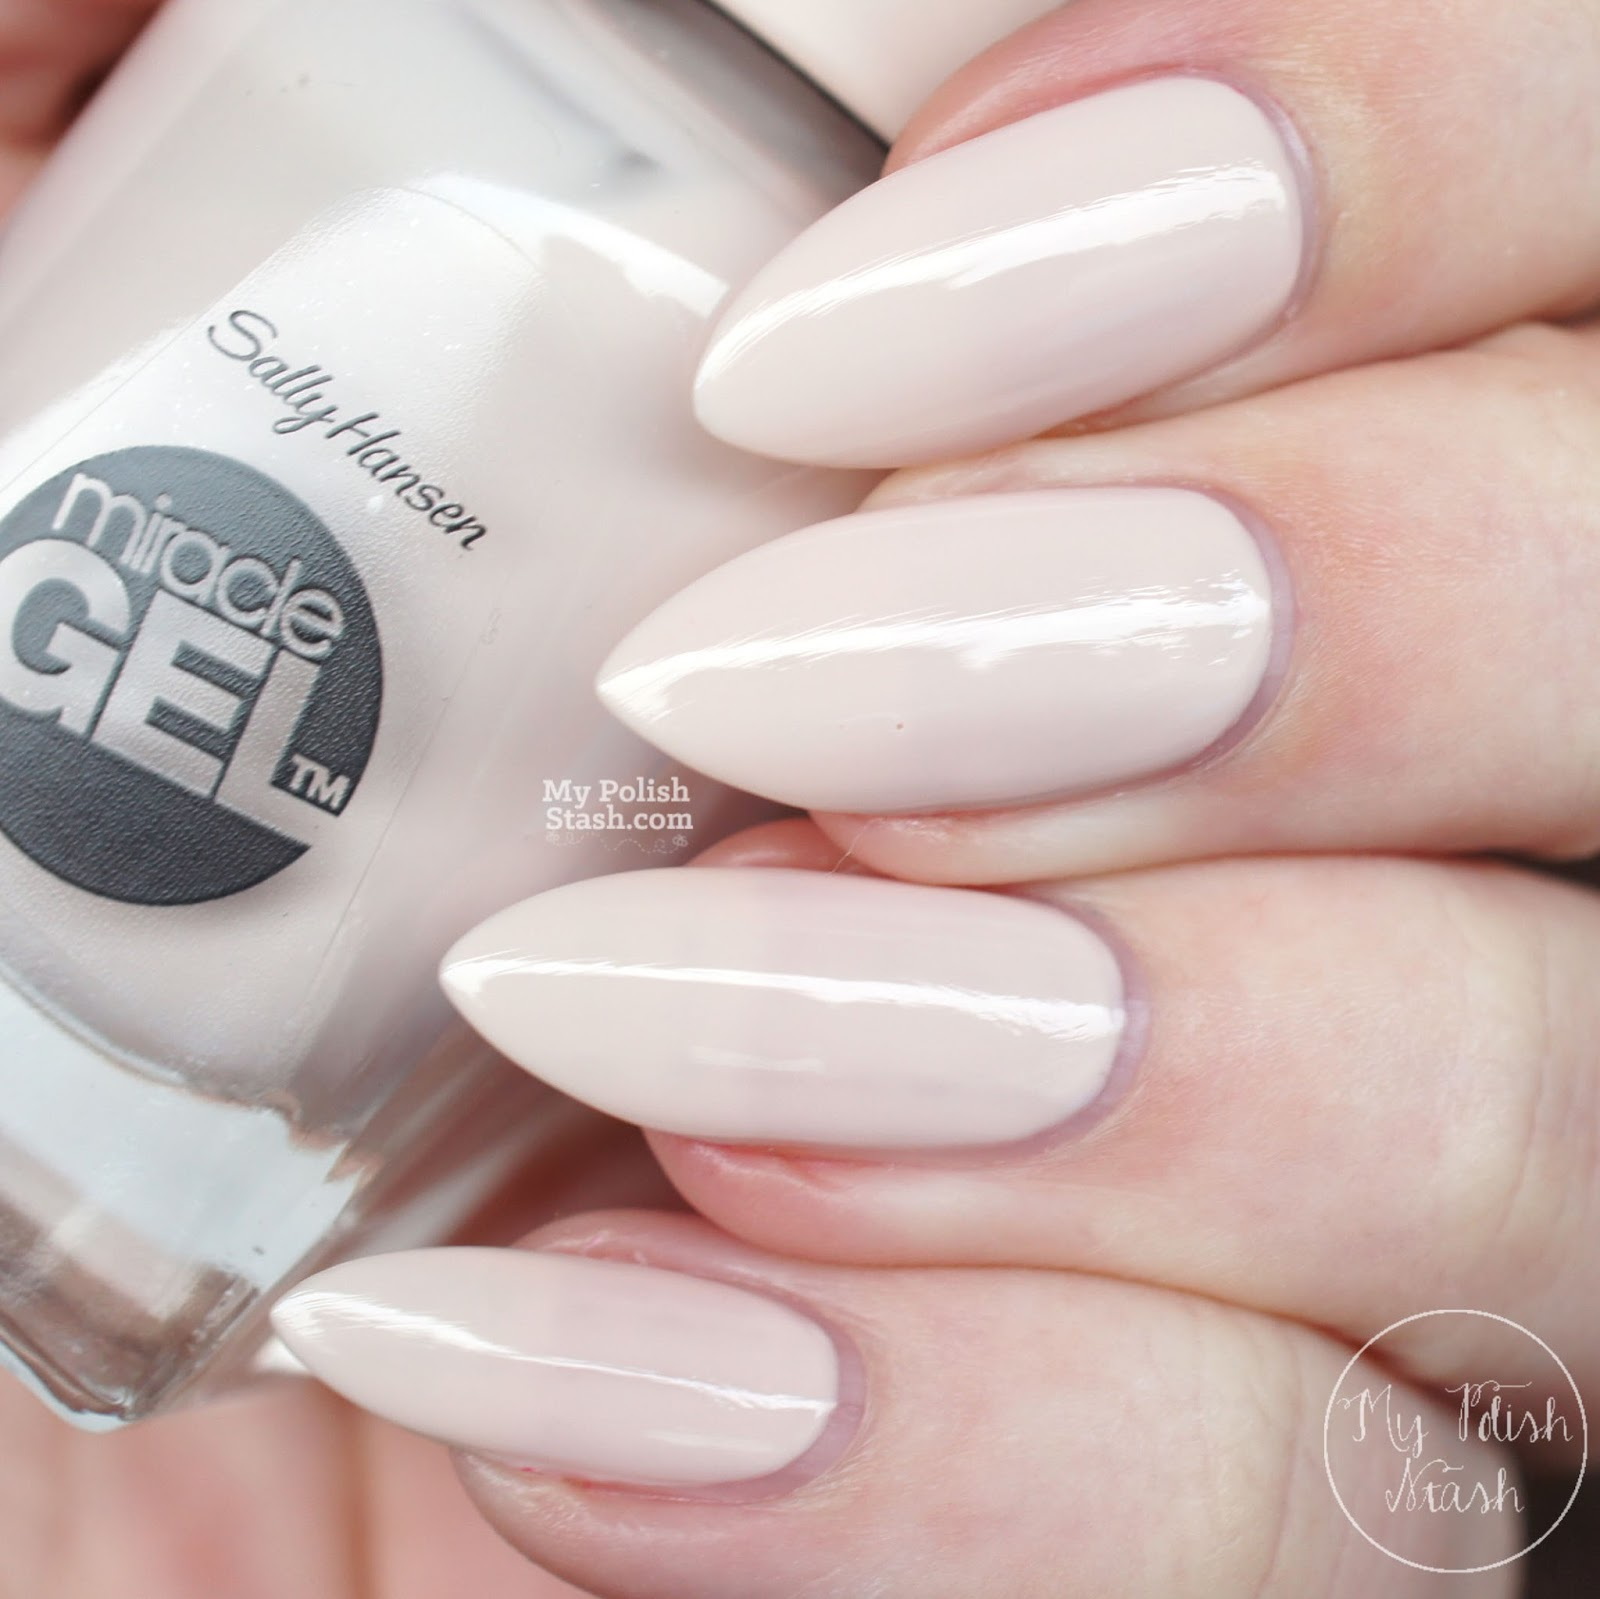 birthday suit sally hansen review